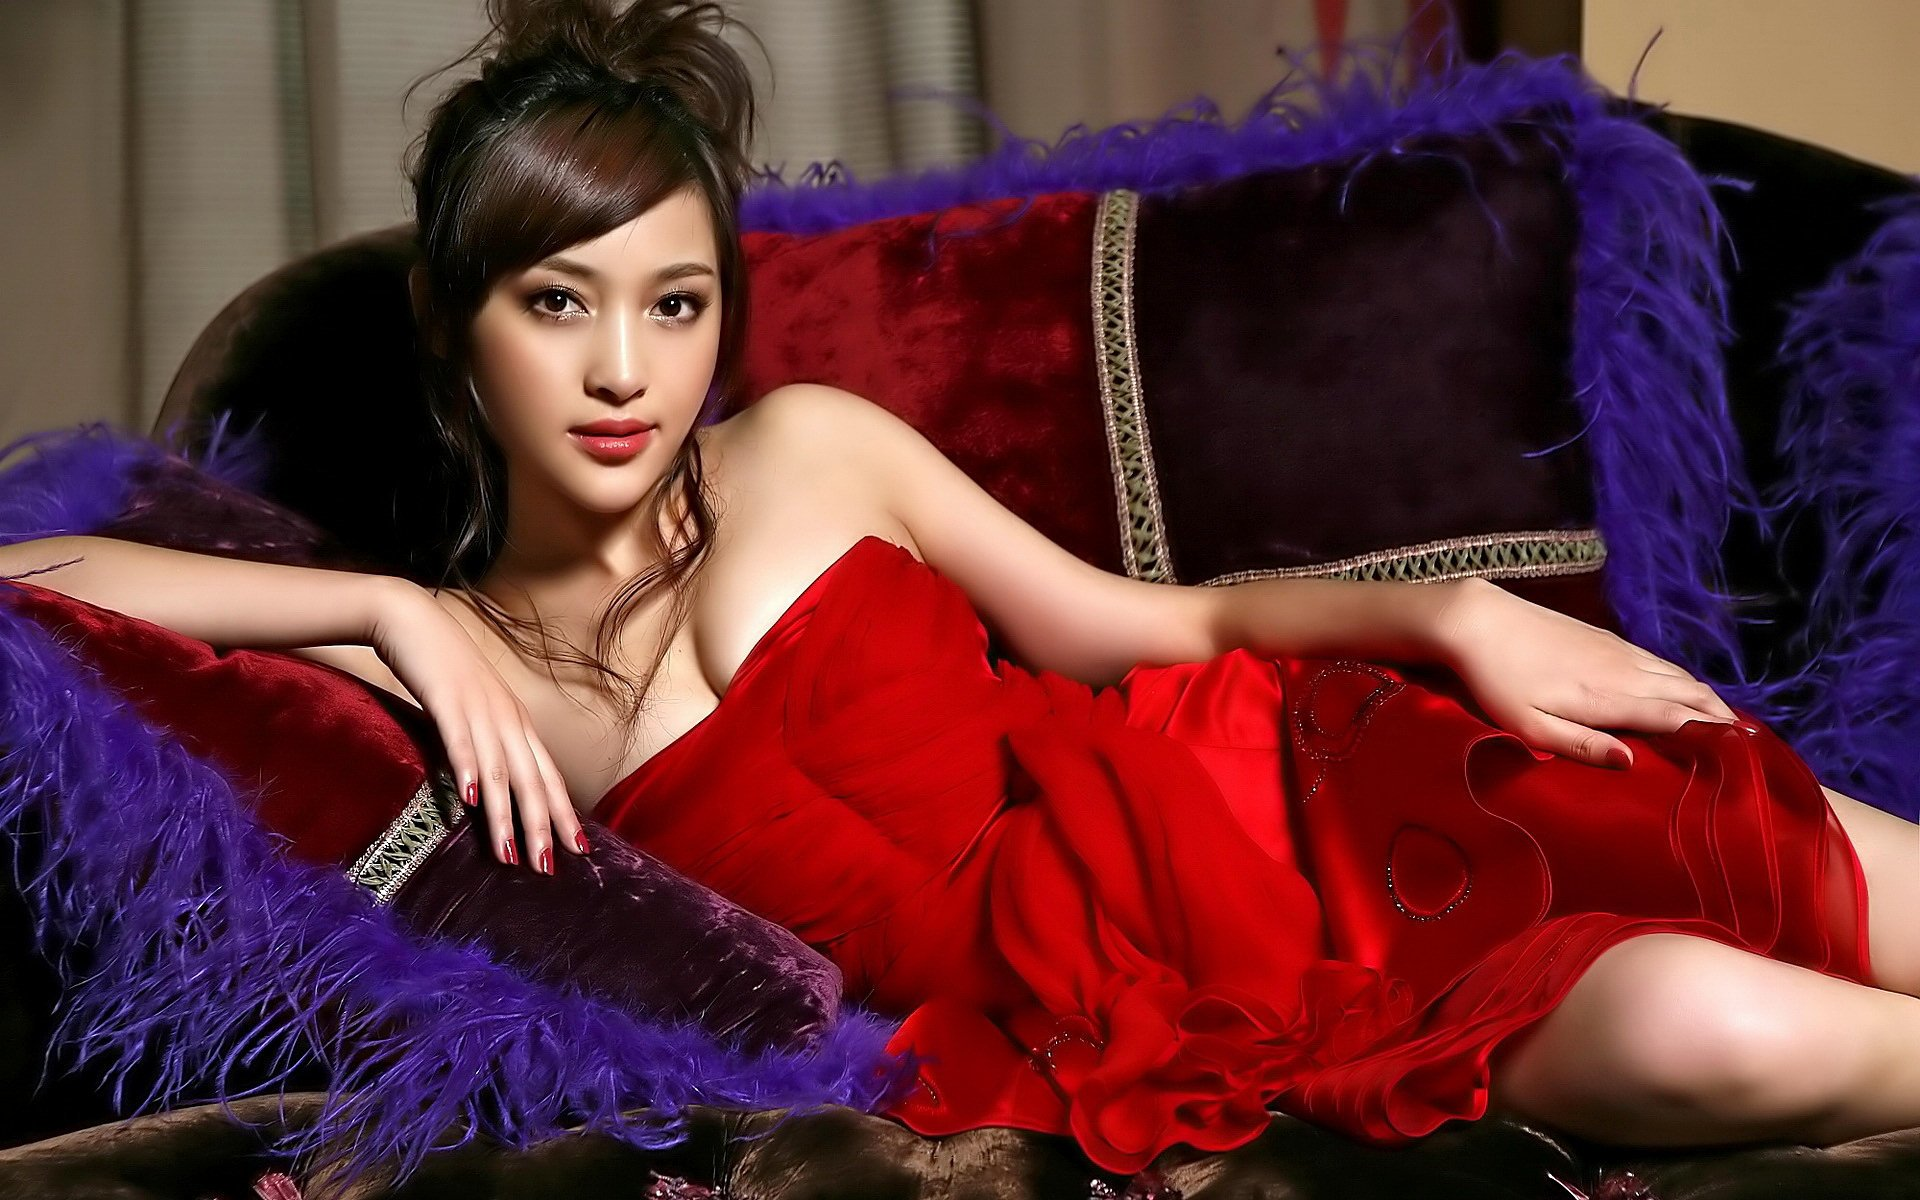 Sexy Asian Babe Hd Wallpaper Background Image